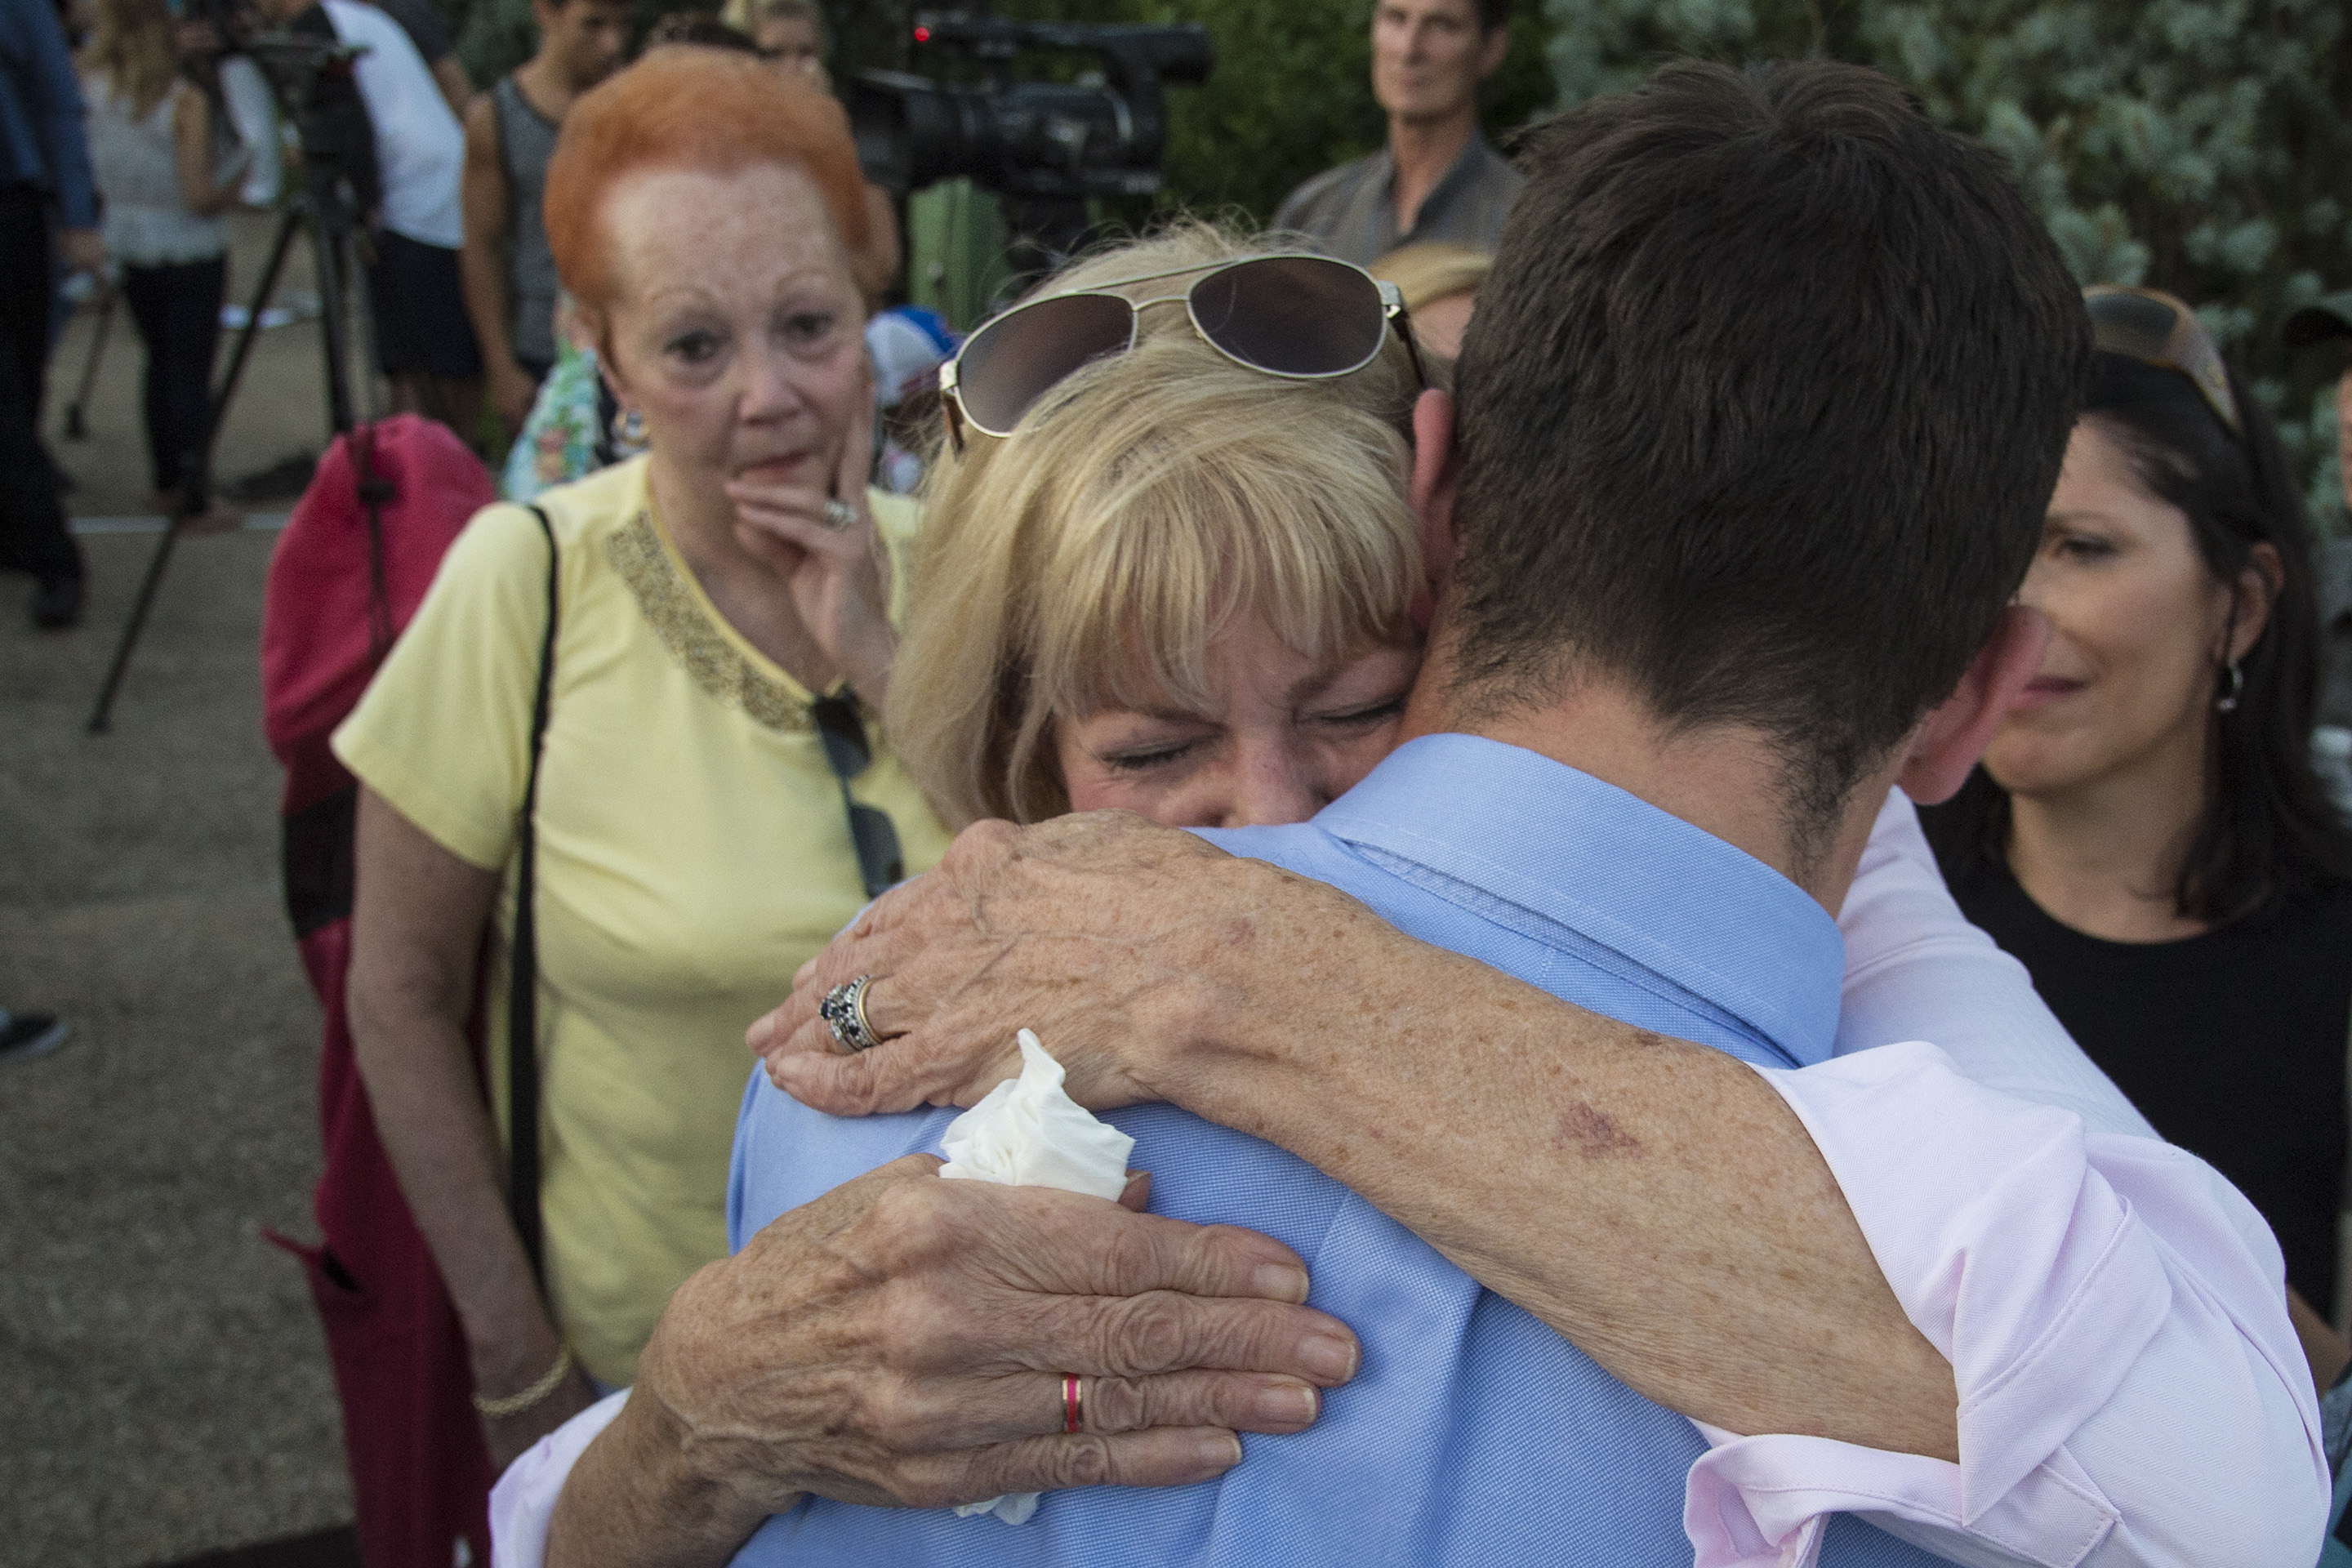 Sharon Patrick, grandmother and legal guardian of Jimi Patrick, who was murdered by Cosmo DiNardo, is embraced by a friend of Jimi's after a prayer and candlelight vigil for the four murdered men at the Garden of Reflection in Lower Makefield July 16, 2017. CLEM MURRAY / Staff Photographer